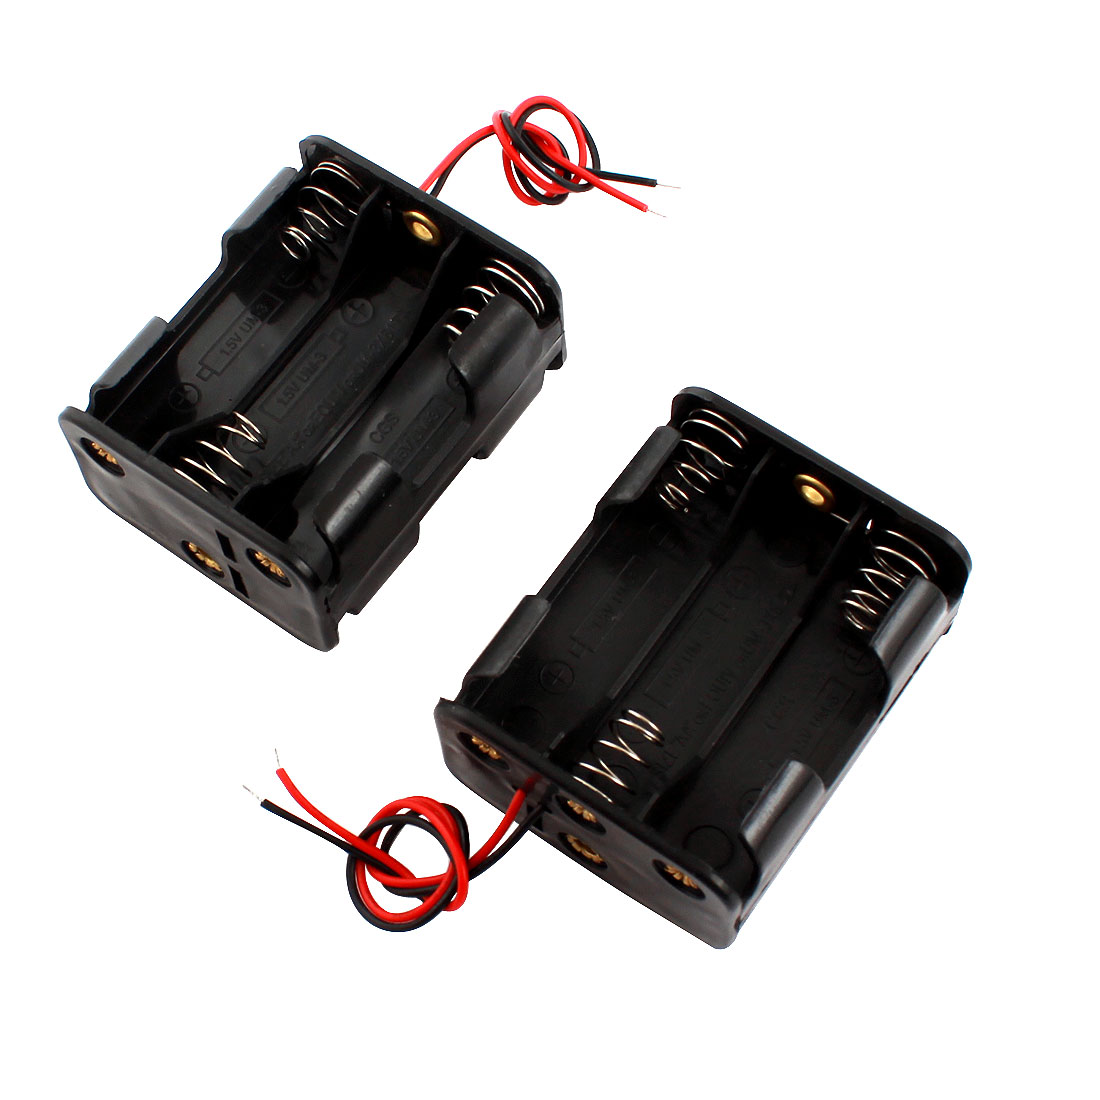 2Pcs Double Sides Battery Storage Case Slot Holder for 6x1.5V AA Batteries